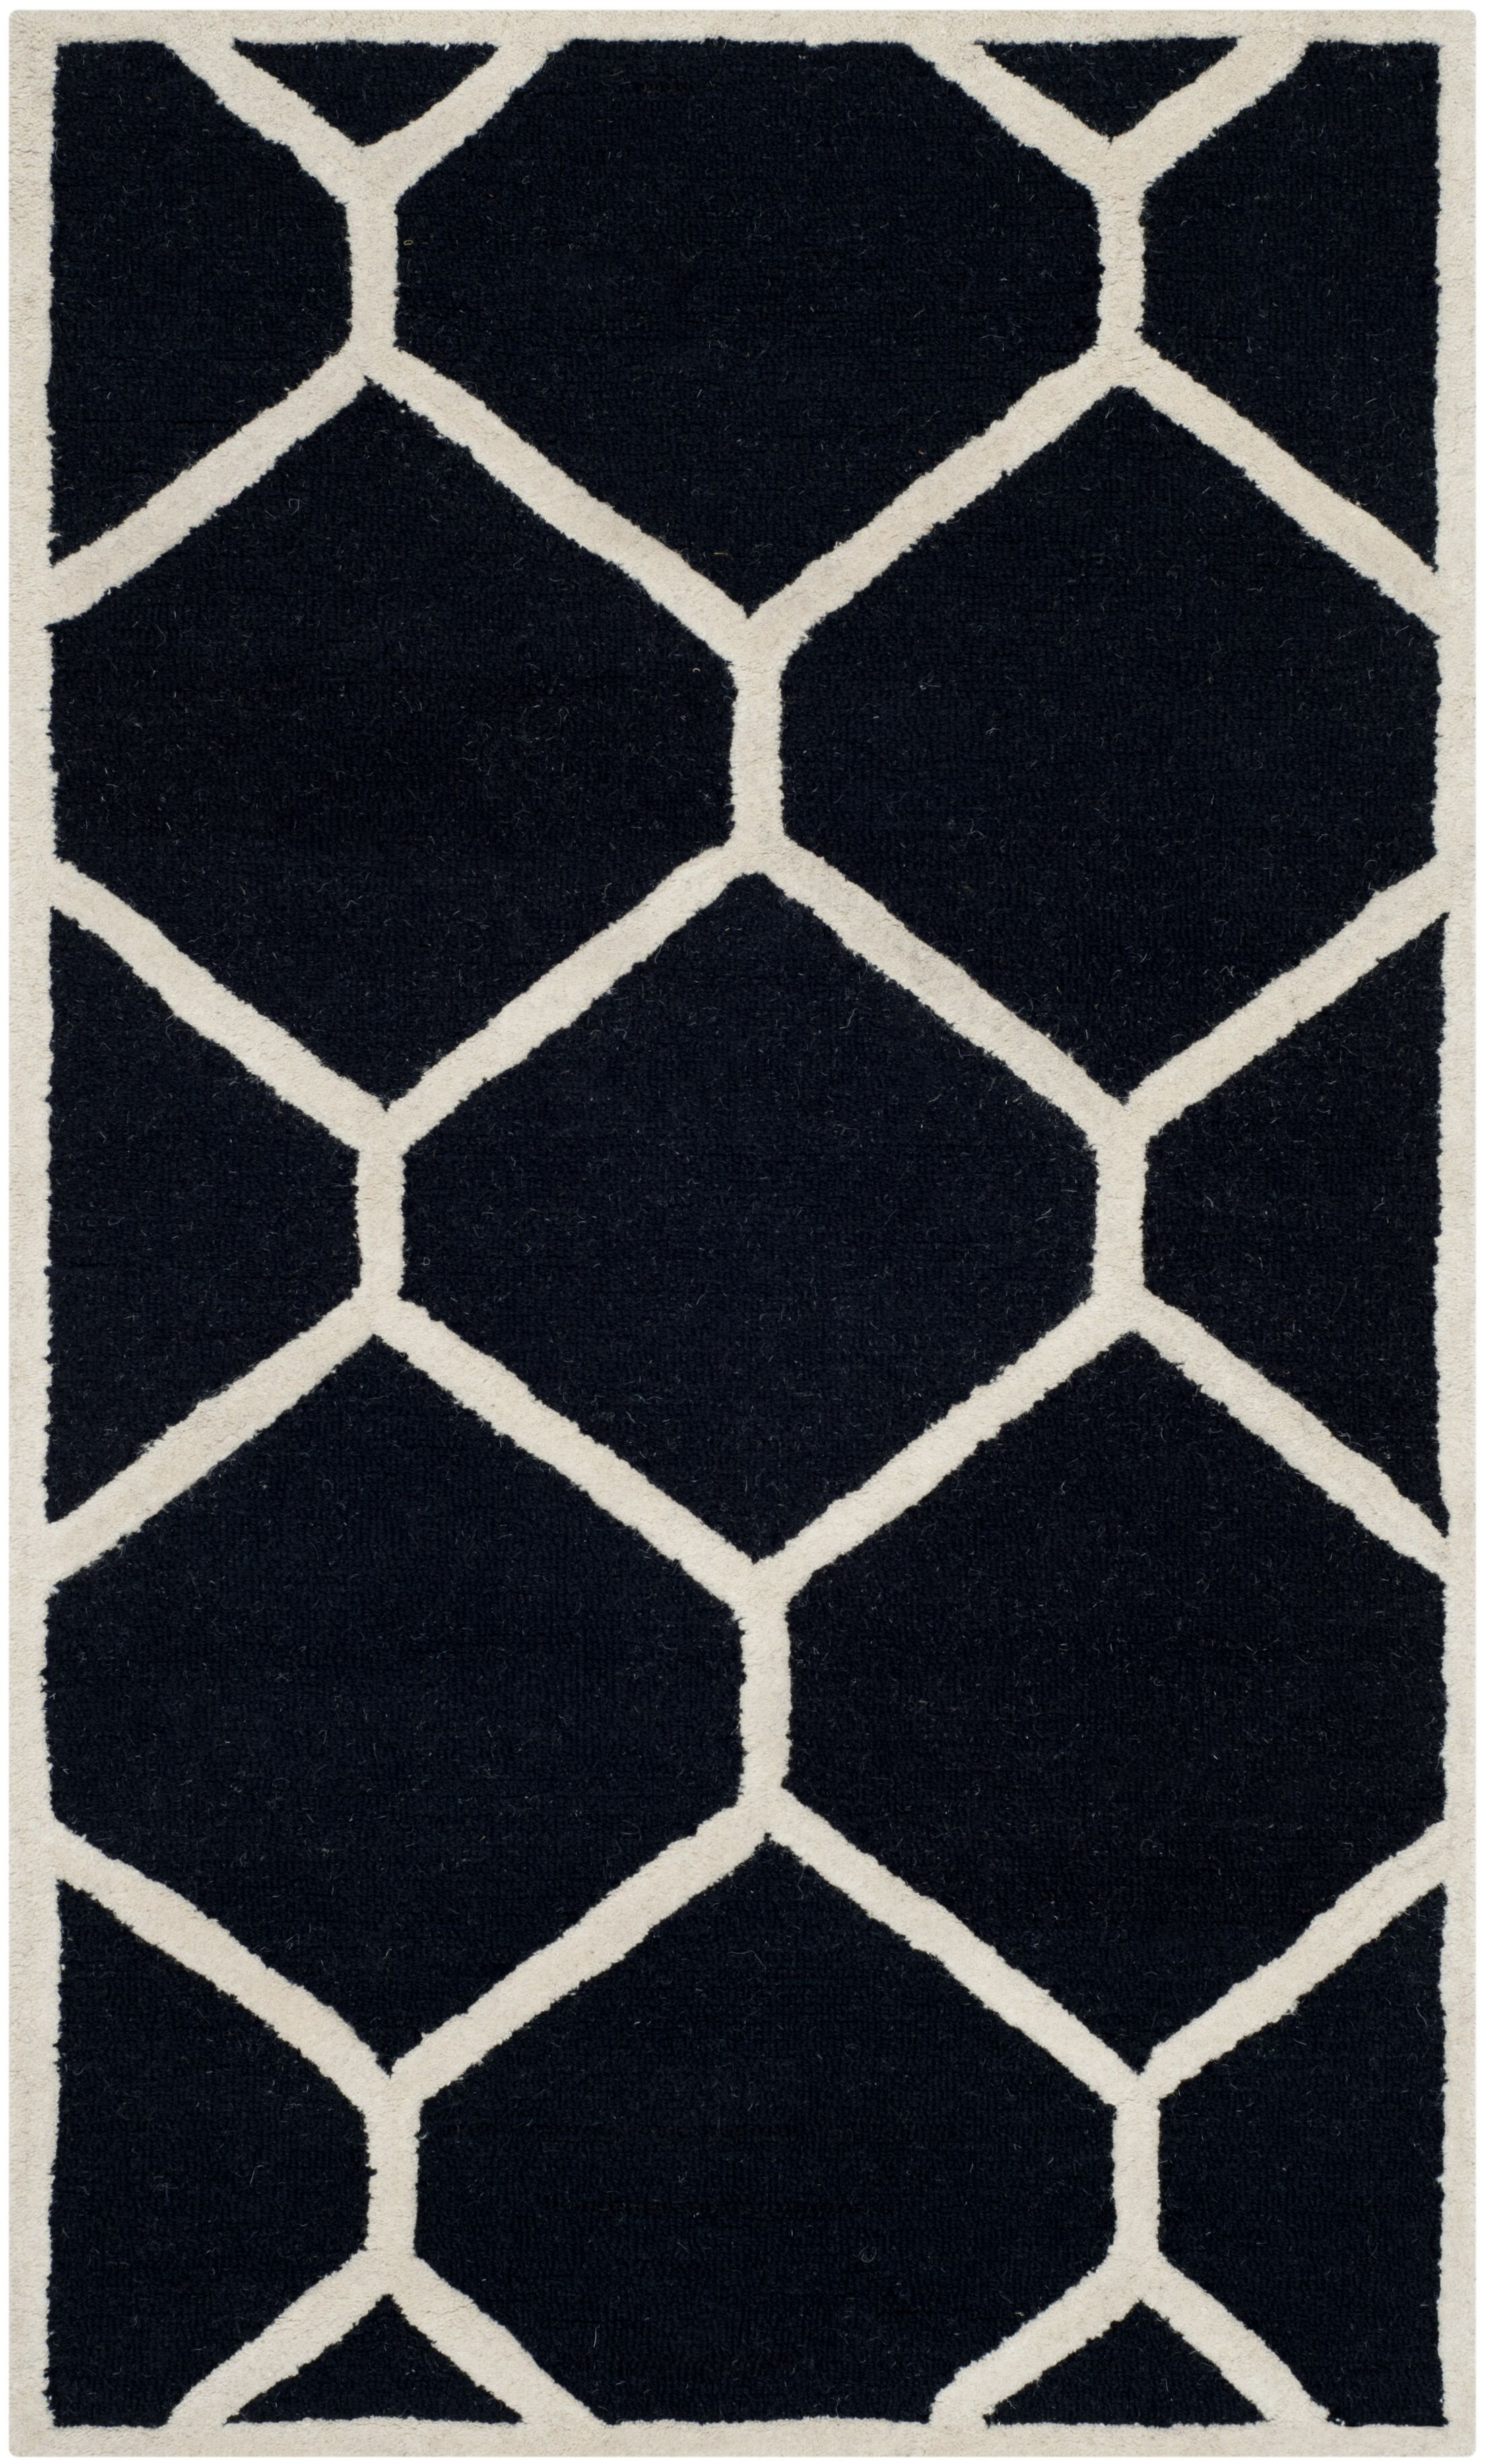 Martins Hand-Tufted Wool Black/Ivory Area Rug Rug Size: Rectangle 3' x 5'